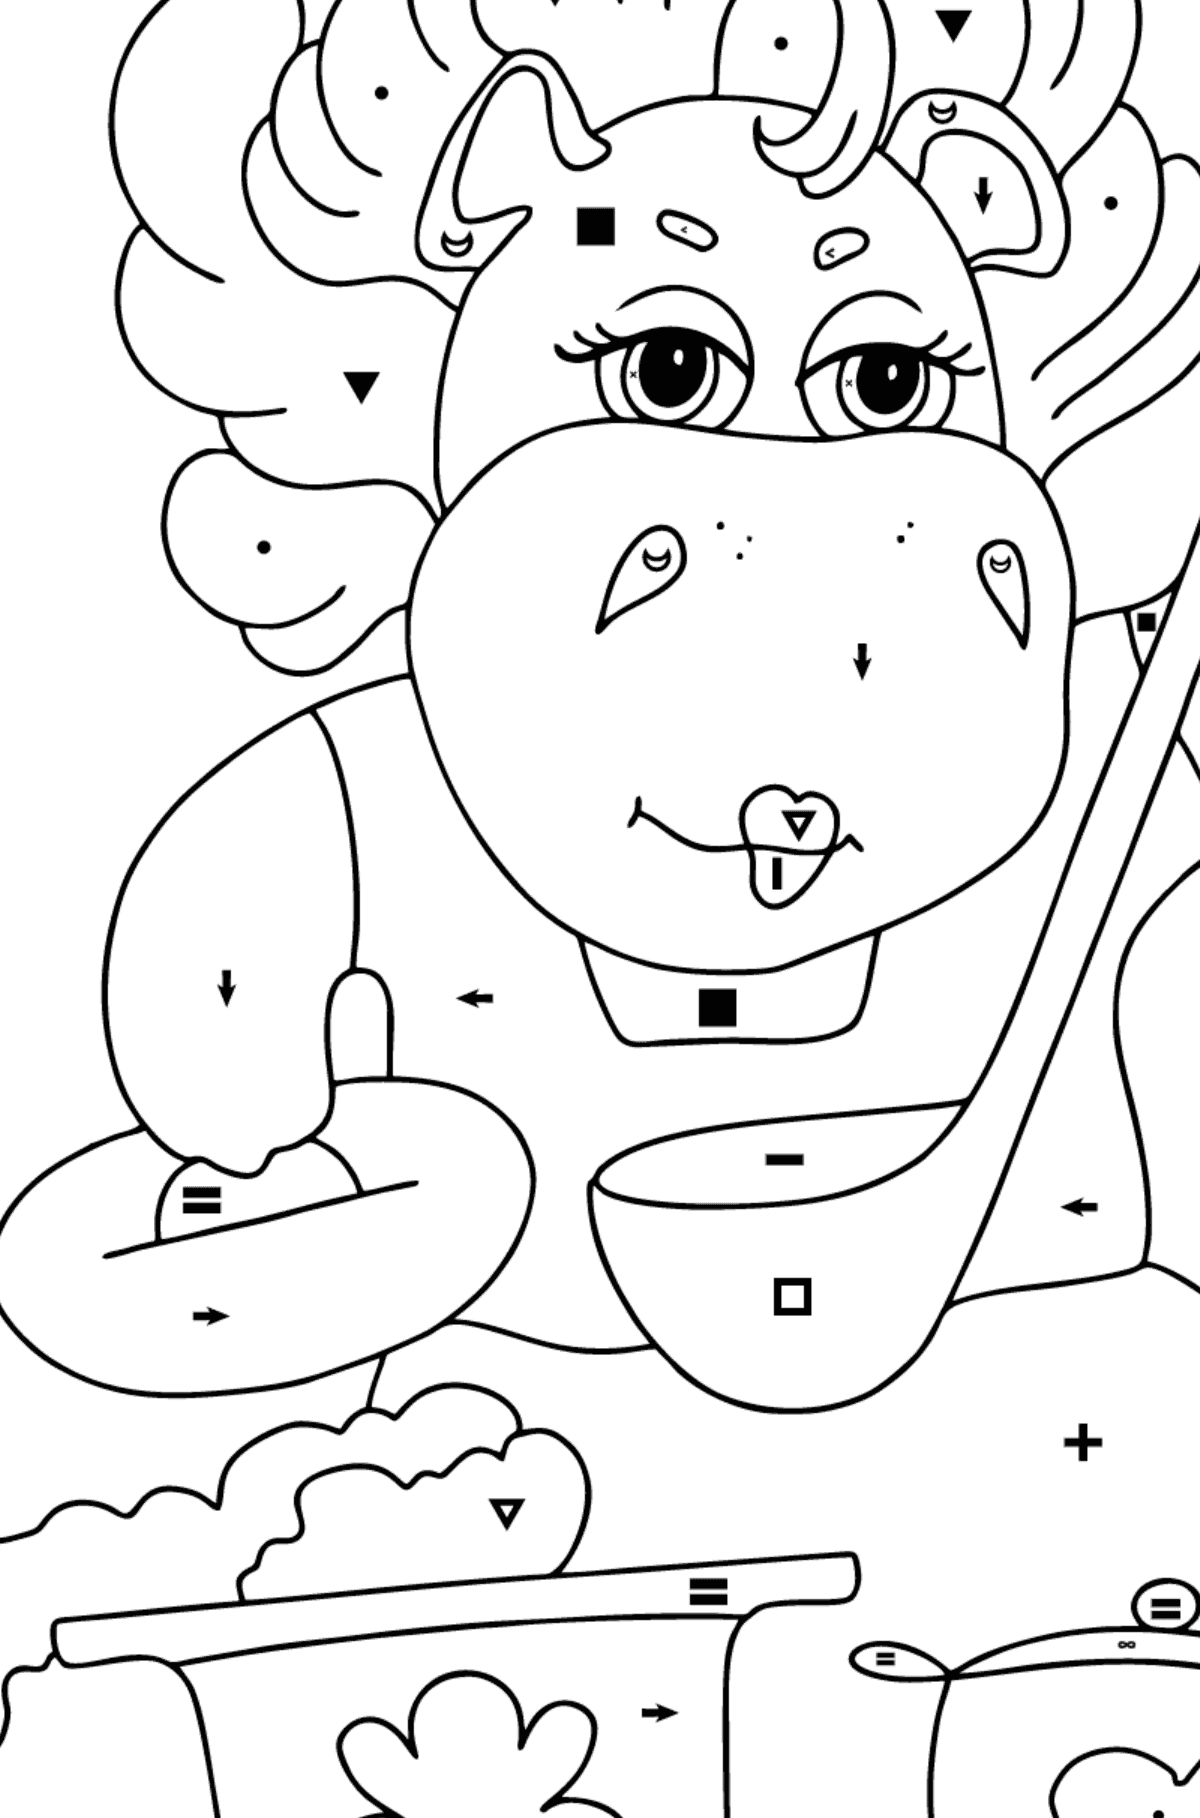 Coloring Page - A Hippo is Cooking a Tasty Lunch for Kids  - Color by Special Symbols